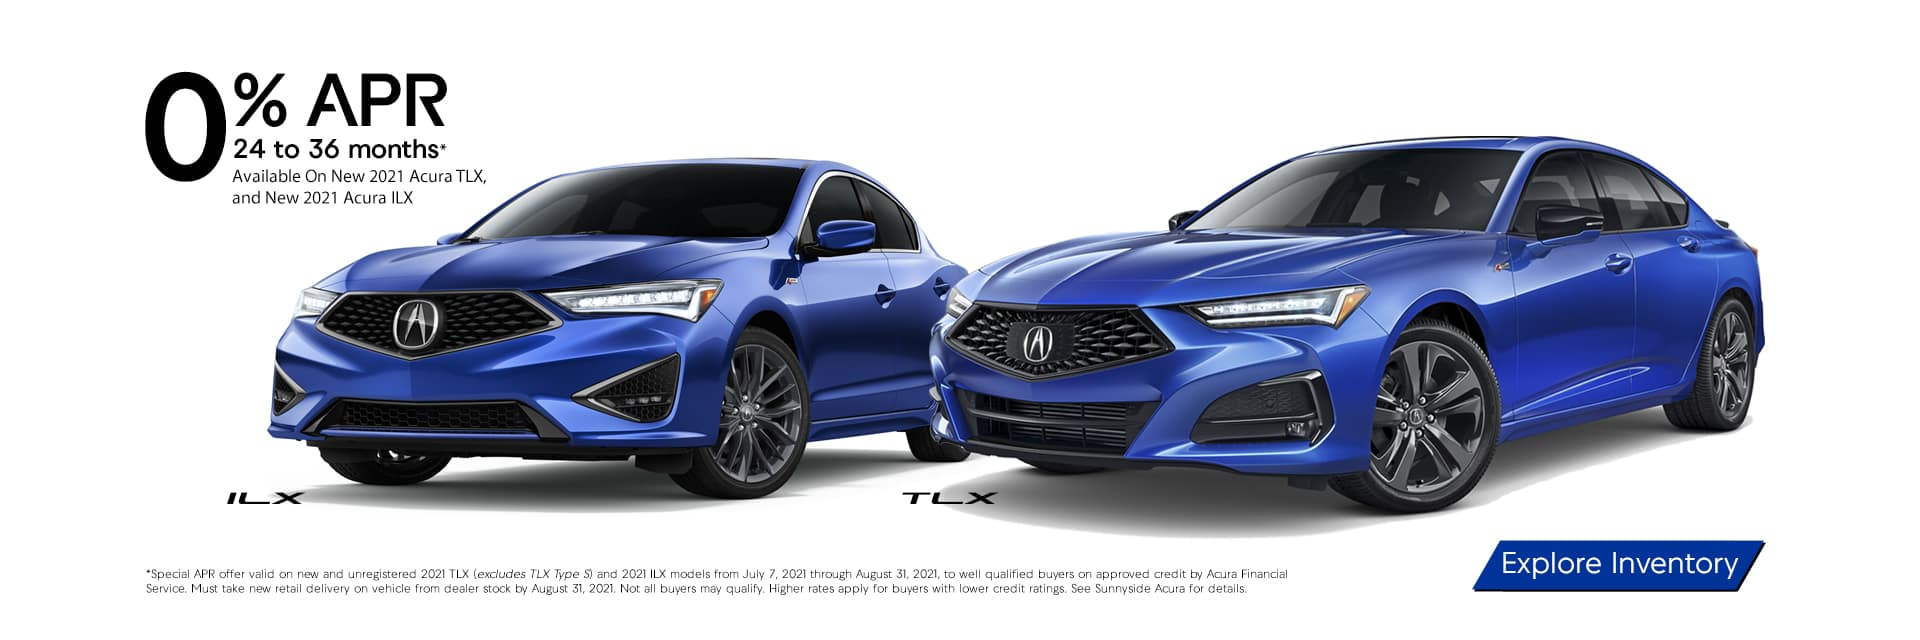 2021 Acura TLX 2021 Acura ILX 0% APR for 24 to 36 months at Sunnyside Acura Nashua, NH 03063